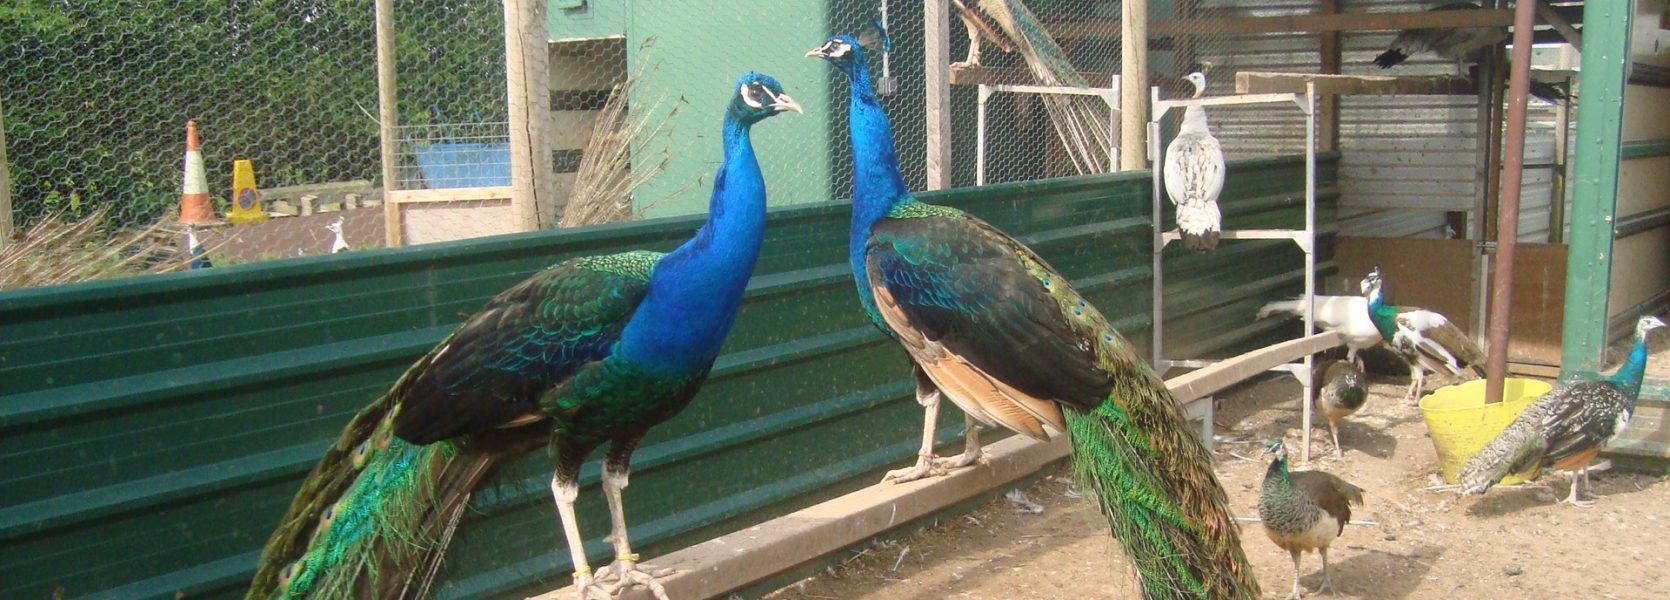 Black Shouldered peafowl